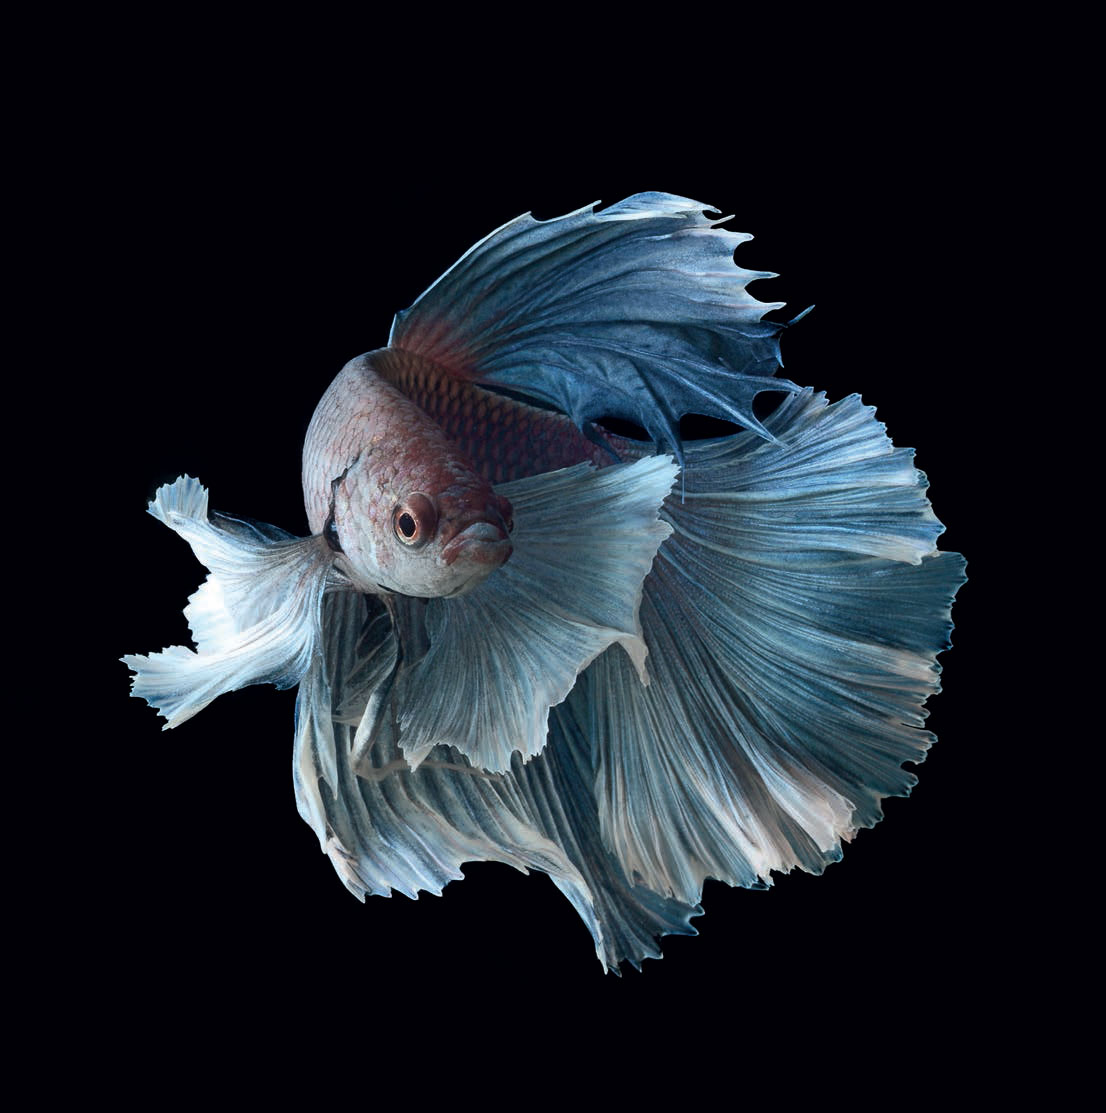 Astonishing Animals – The Siamese Fighting Fish